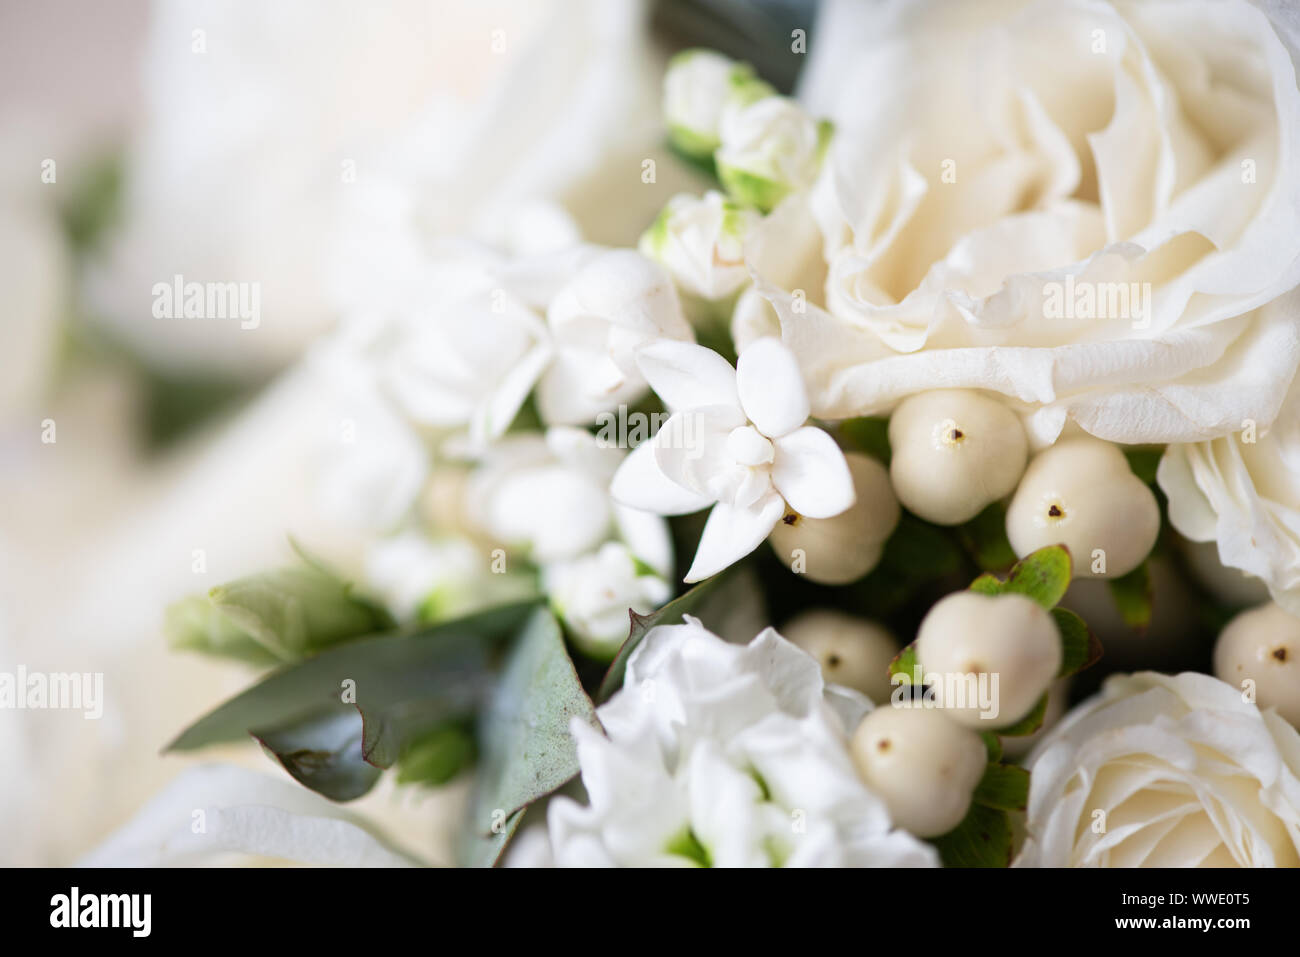 Beautiful bouquet of flowers closeup. Themes of engagement, declaration of love, wedding day, florist services. Stock Photo